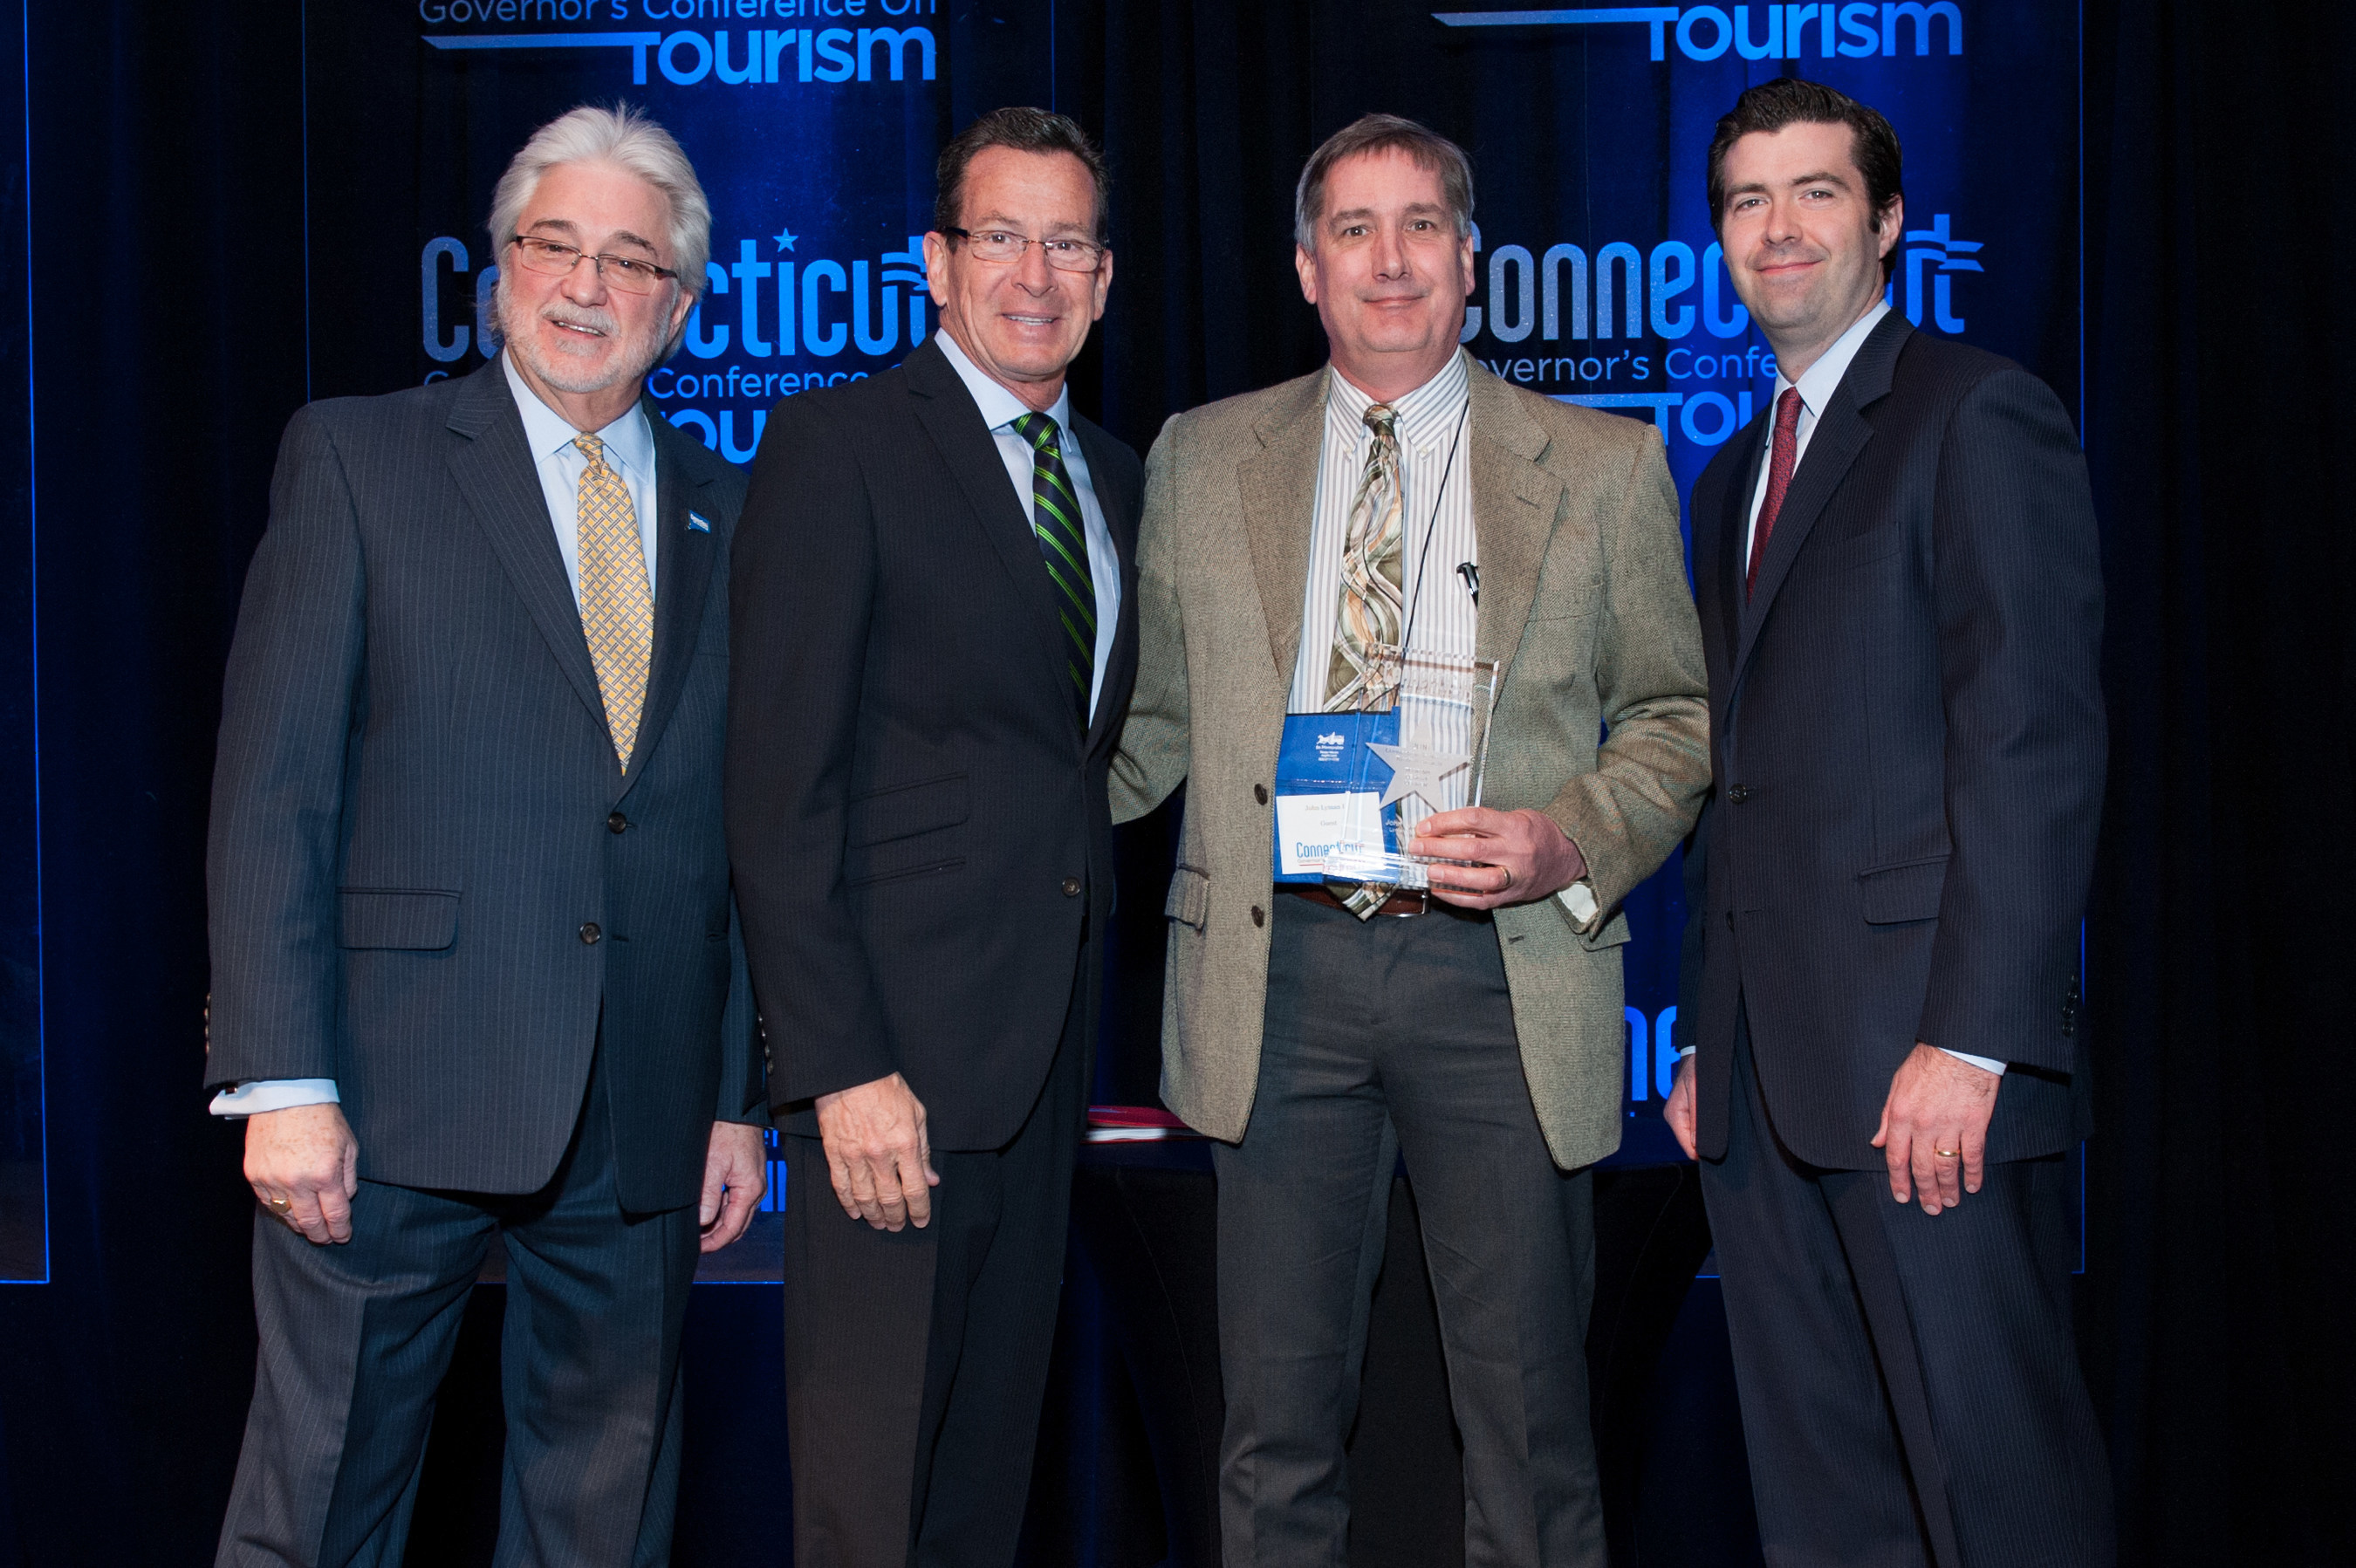 John Lyman III, Executive Vice President of Lyman Orchards (Middlefield) receives the 2016 Connecticut Governor's Tourism Award for Tourism Legacy Leader. From left: Randy Fiveash, Director, Connecticut Office of Tourism; Governor Dannel P. Malloy; John Lyman III, Executive Vice President, Lyman Orchards; Tim Sullivan, Deputy Commissioner, Connecticut Department of Economic and Community Development.